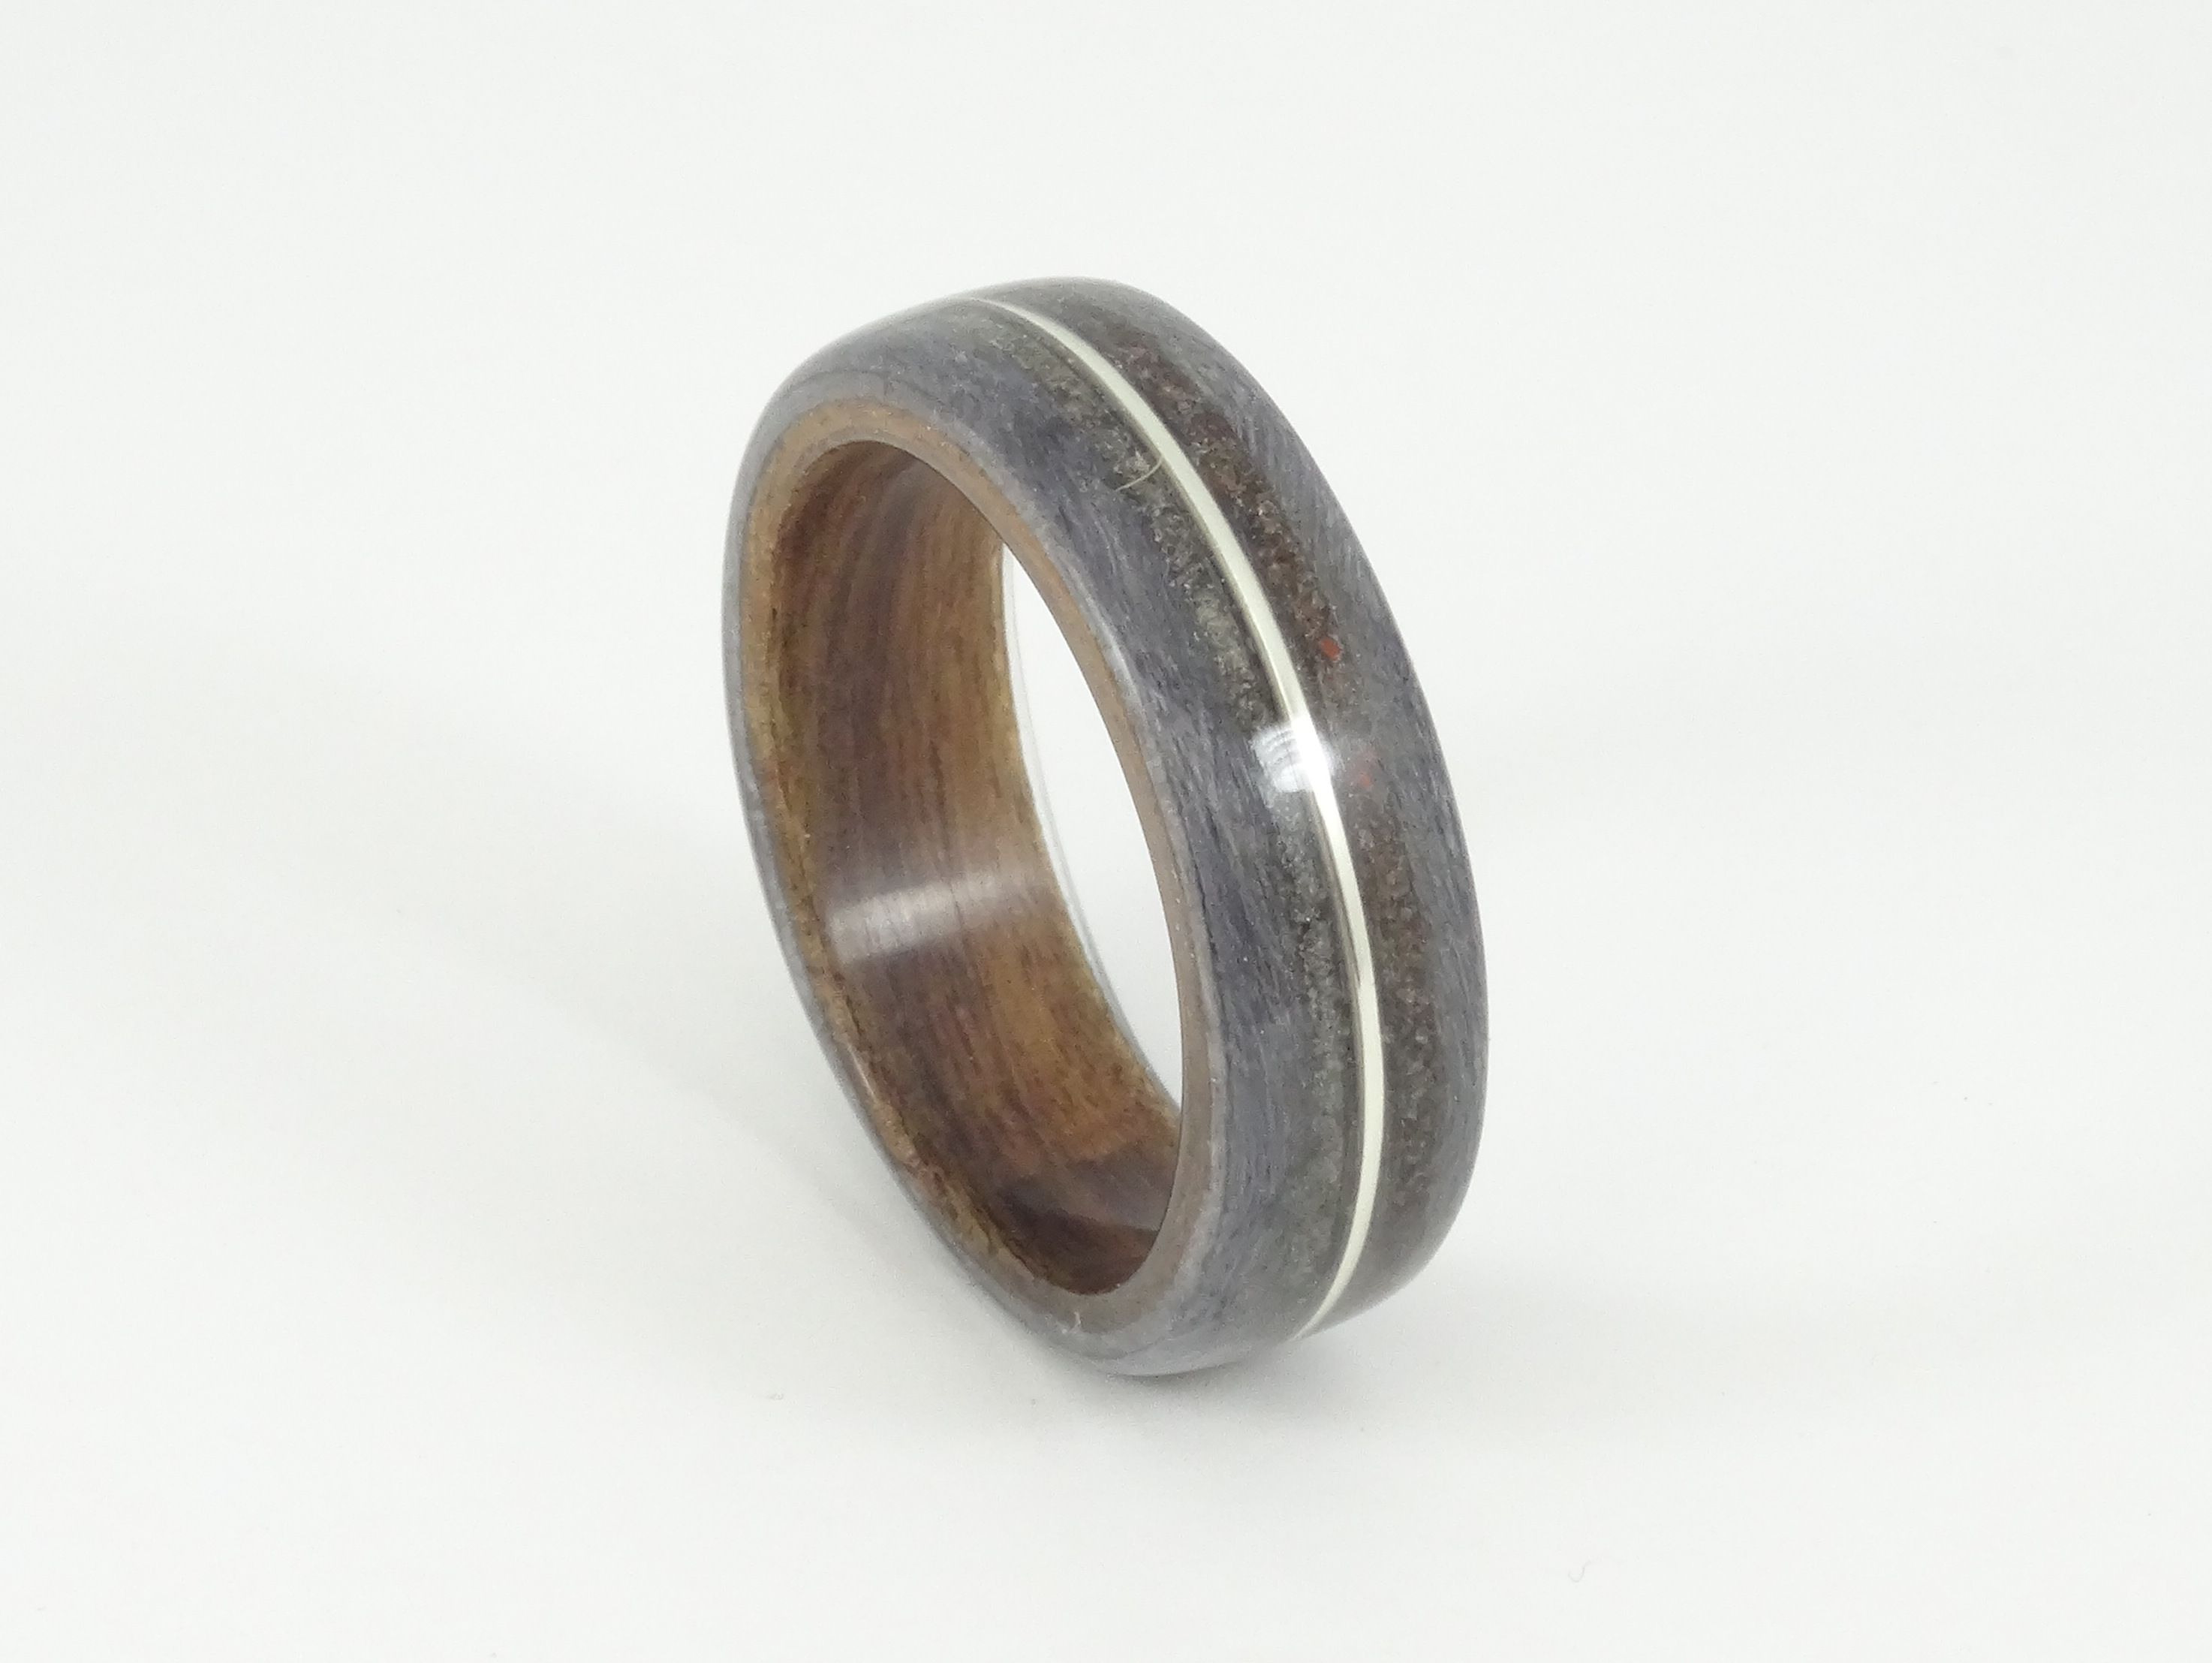 guaranteed steel rings stainless lathe handmade